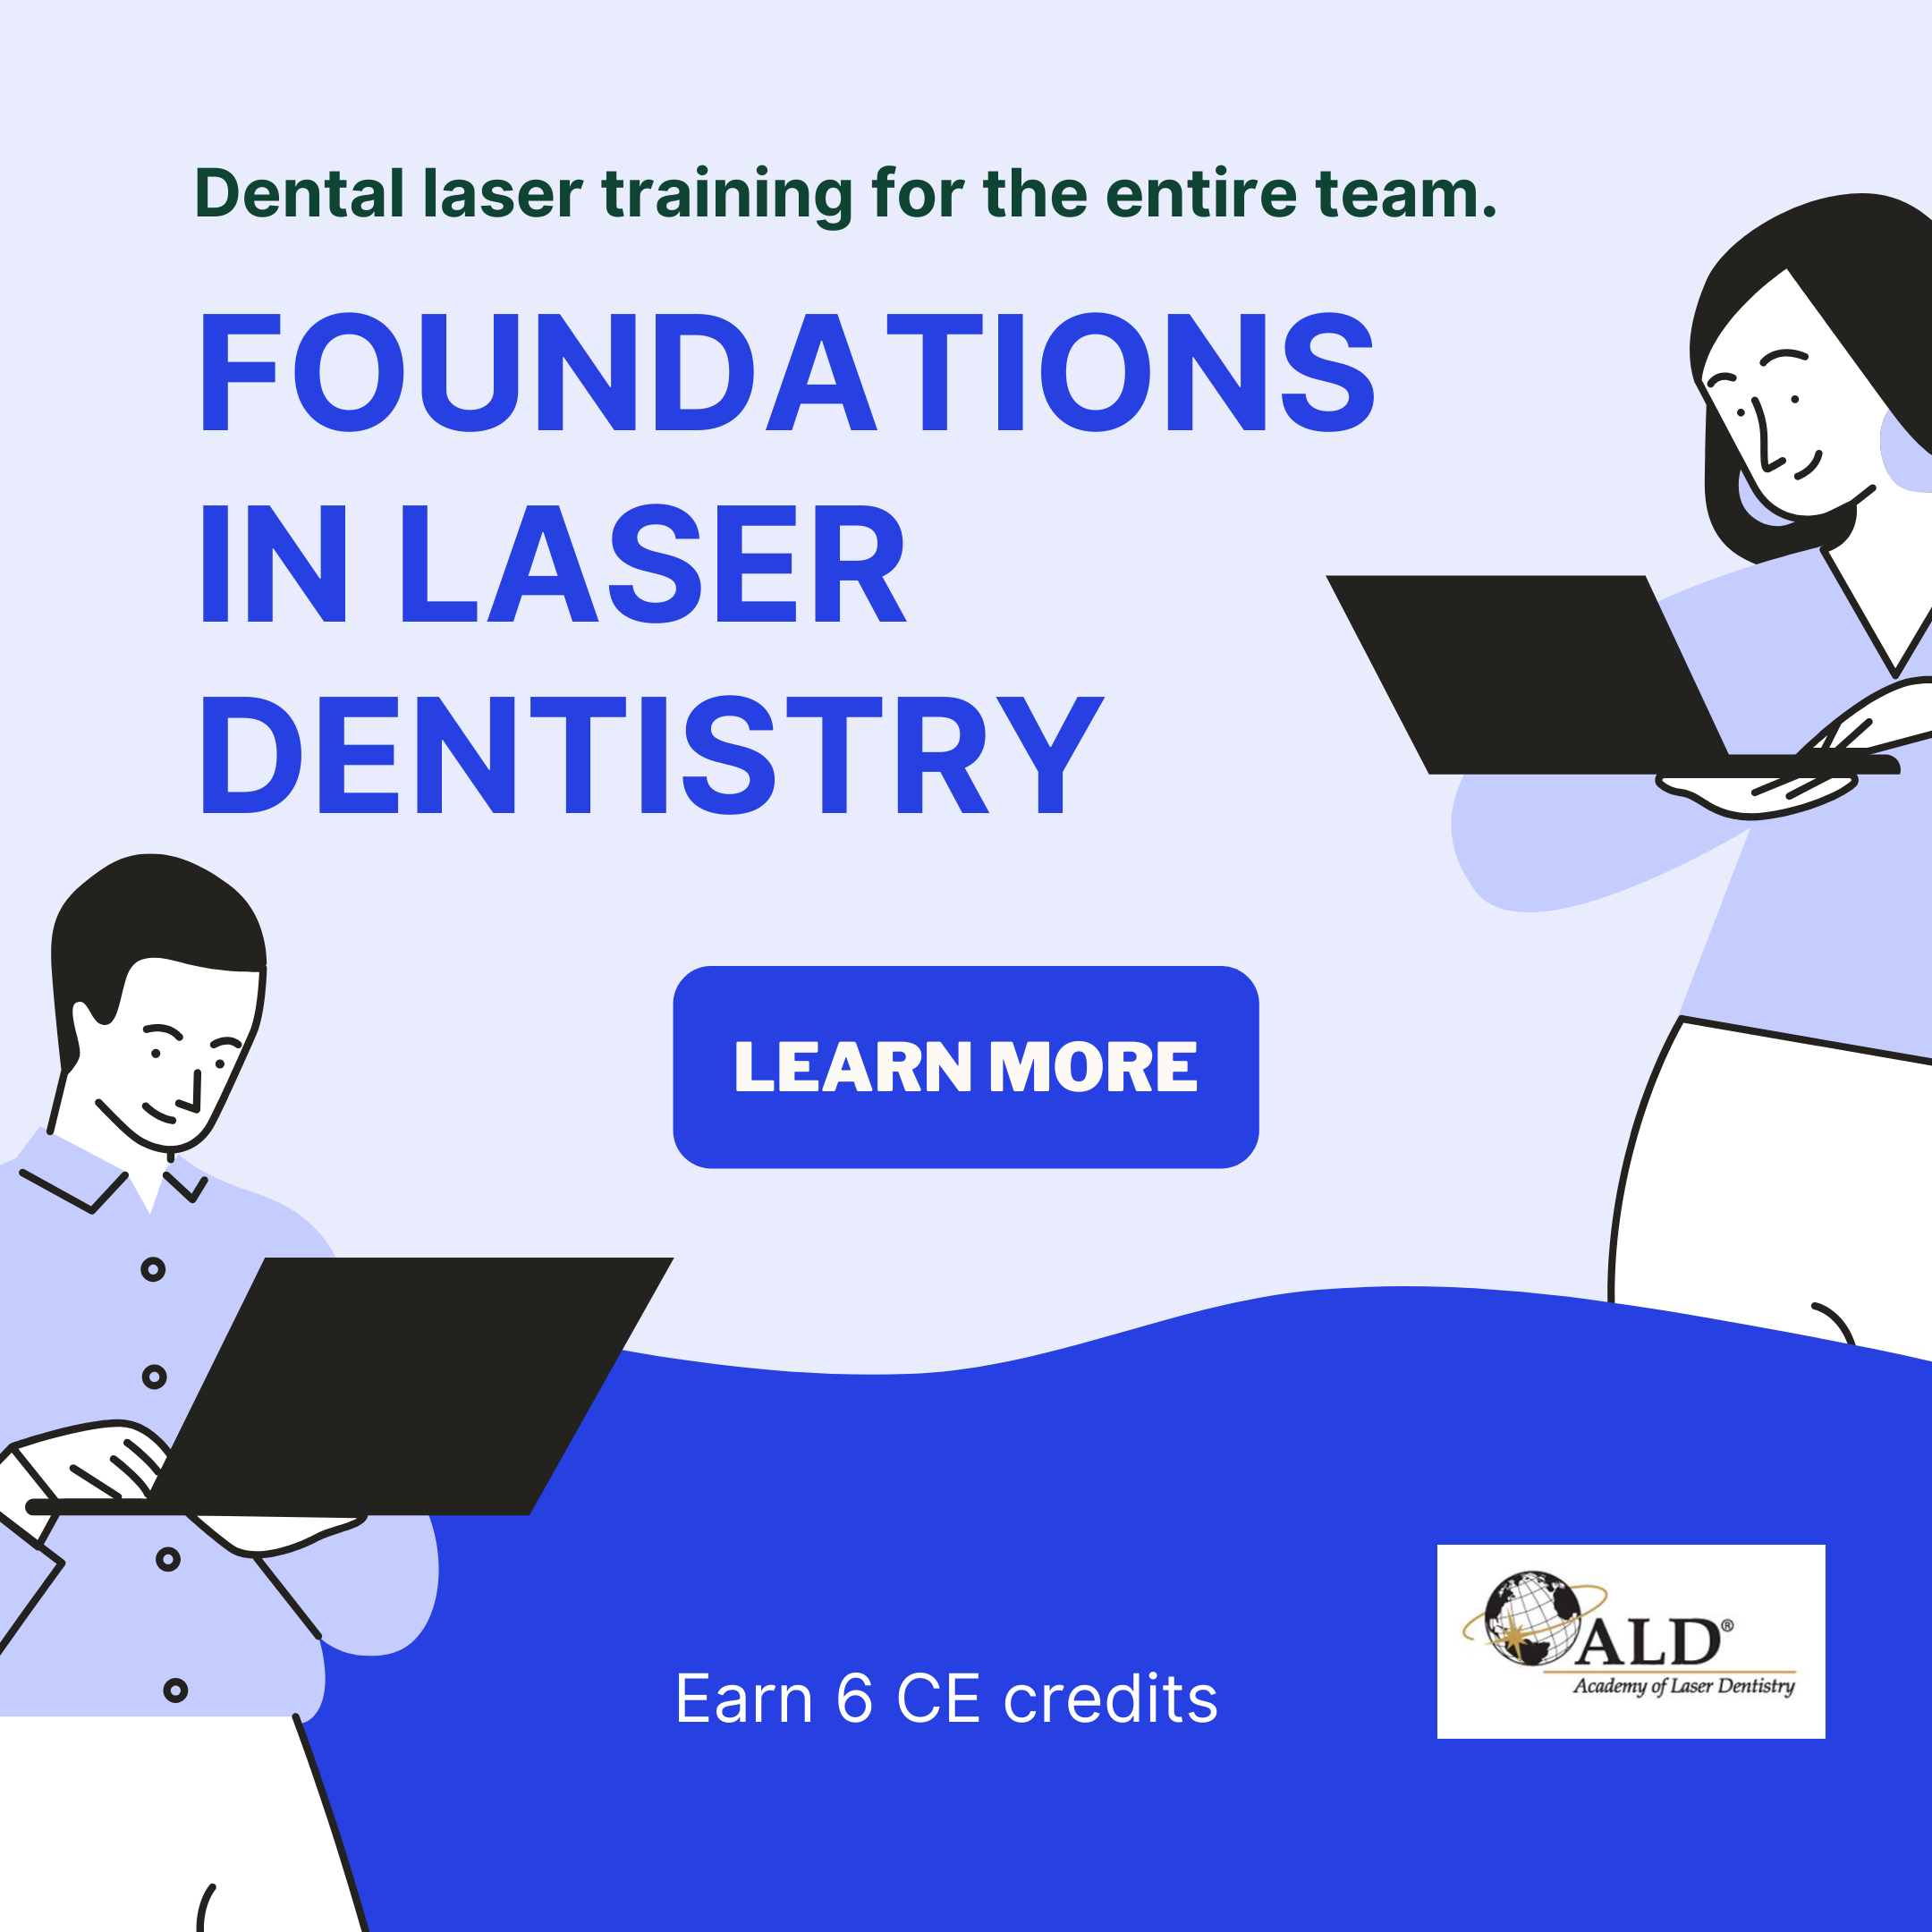 ALD FOUNDATIONS IN LASER DENTISTRY